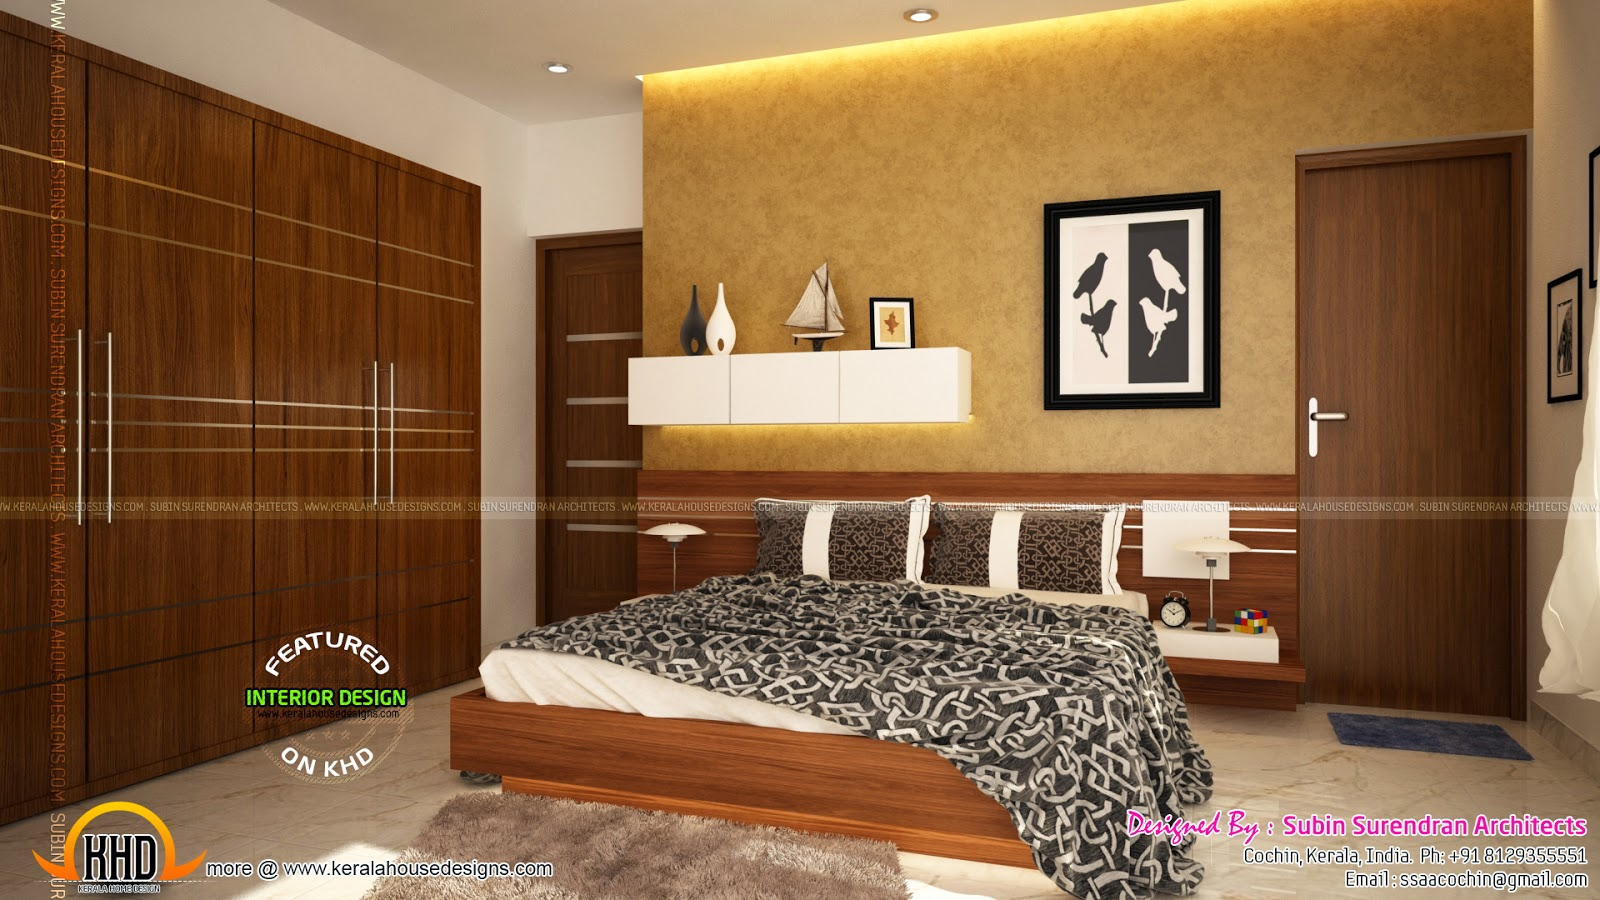 Kerala style low cost double storied home keralahousedesigns for Interior designs houses pictures